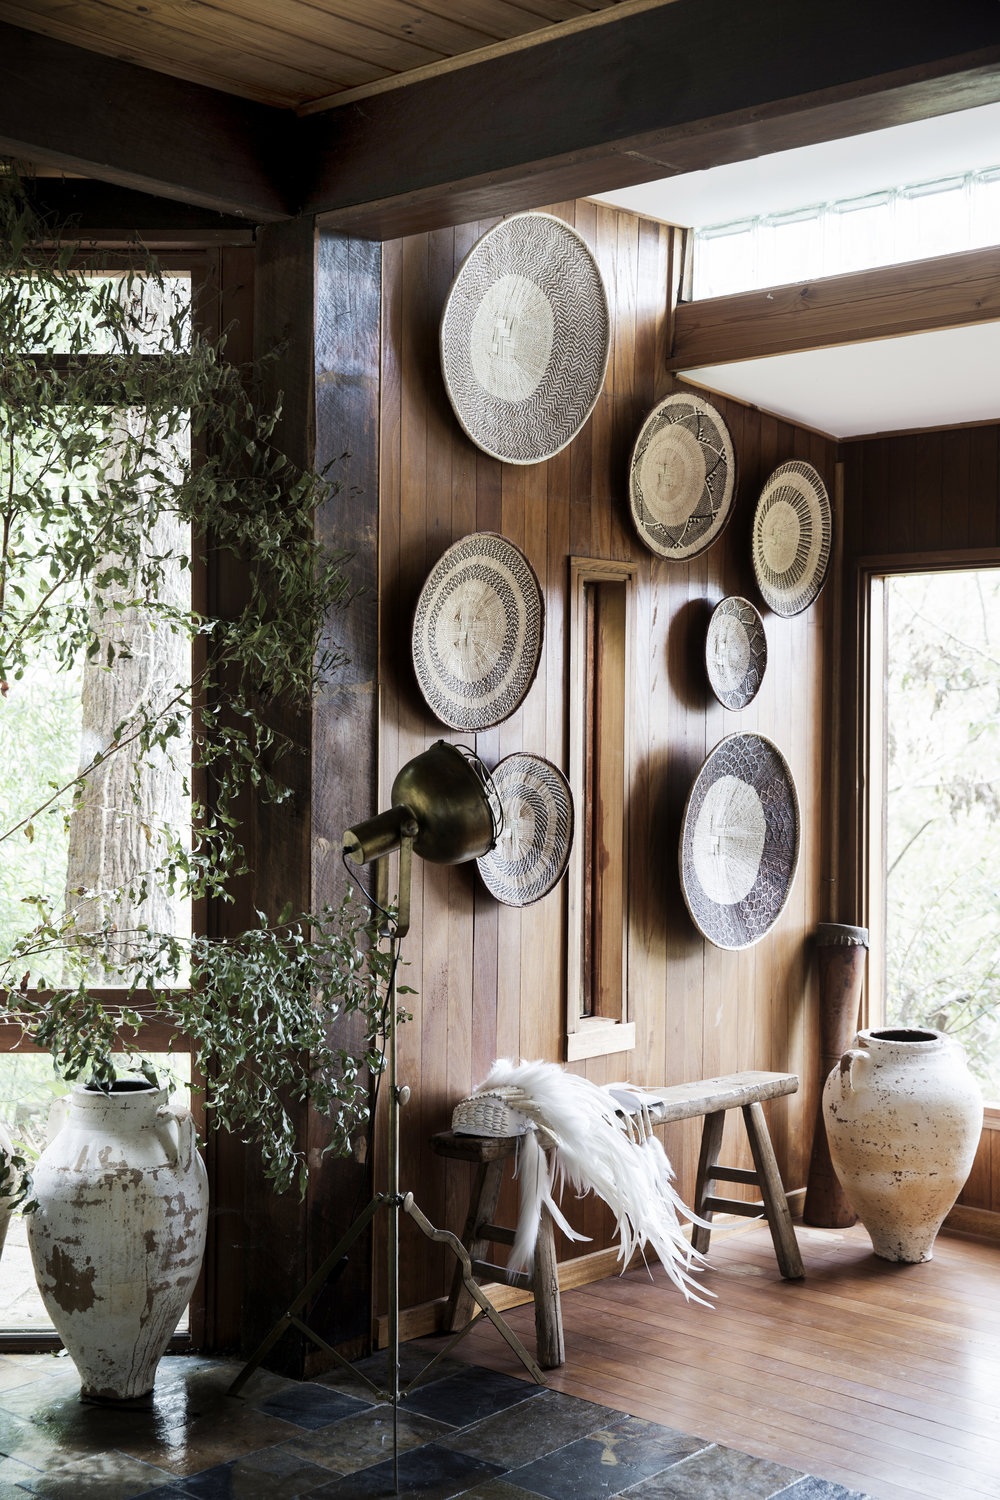 A corner of Natalie's home in the Yarrayong Valley. Styling - Natalie Walton. Photo - Chris Warnes.